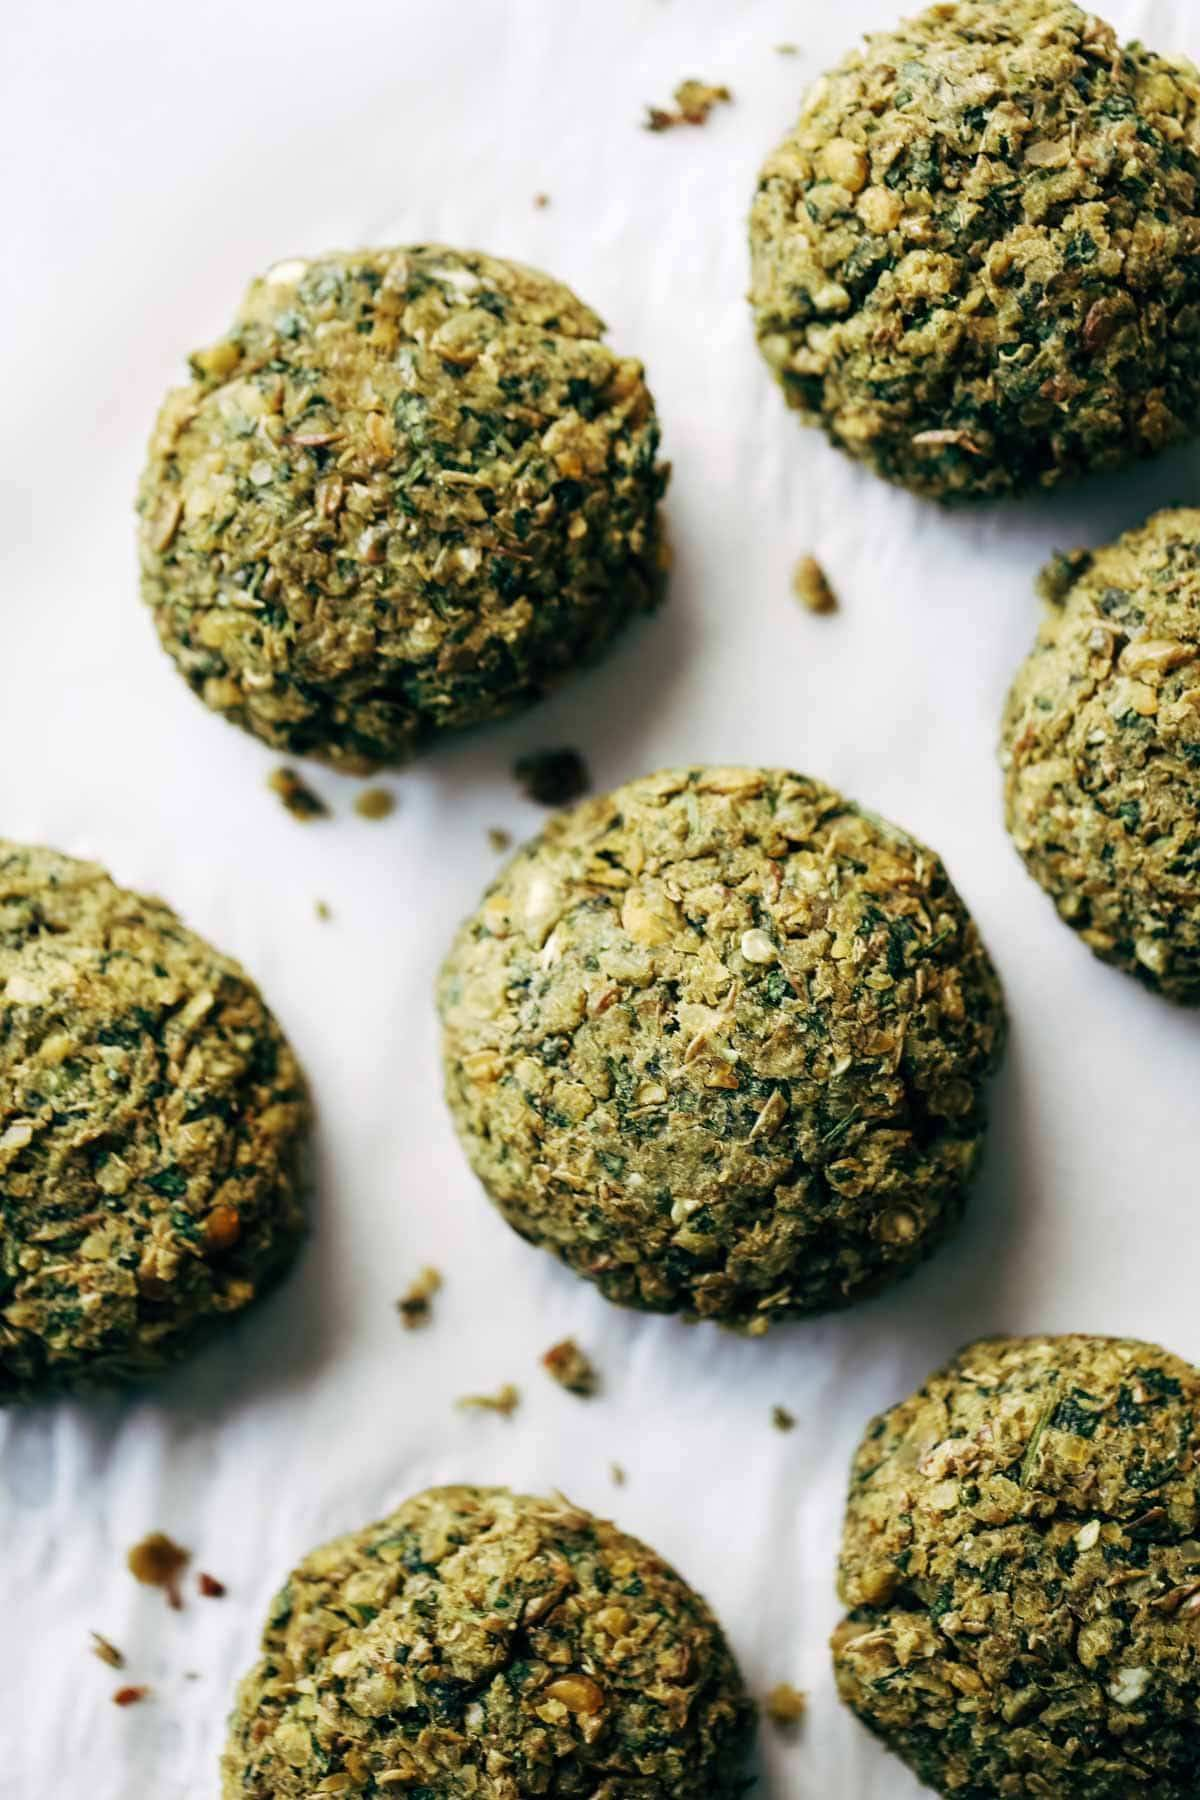 Easy baked falafel at home in 30 minutes WITHOUT deep frying! Features lentils, herbs, garlic, lemon juice. Use in salads, sandwiches, healthy recipes. | pinchofyum.com